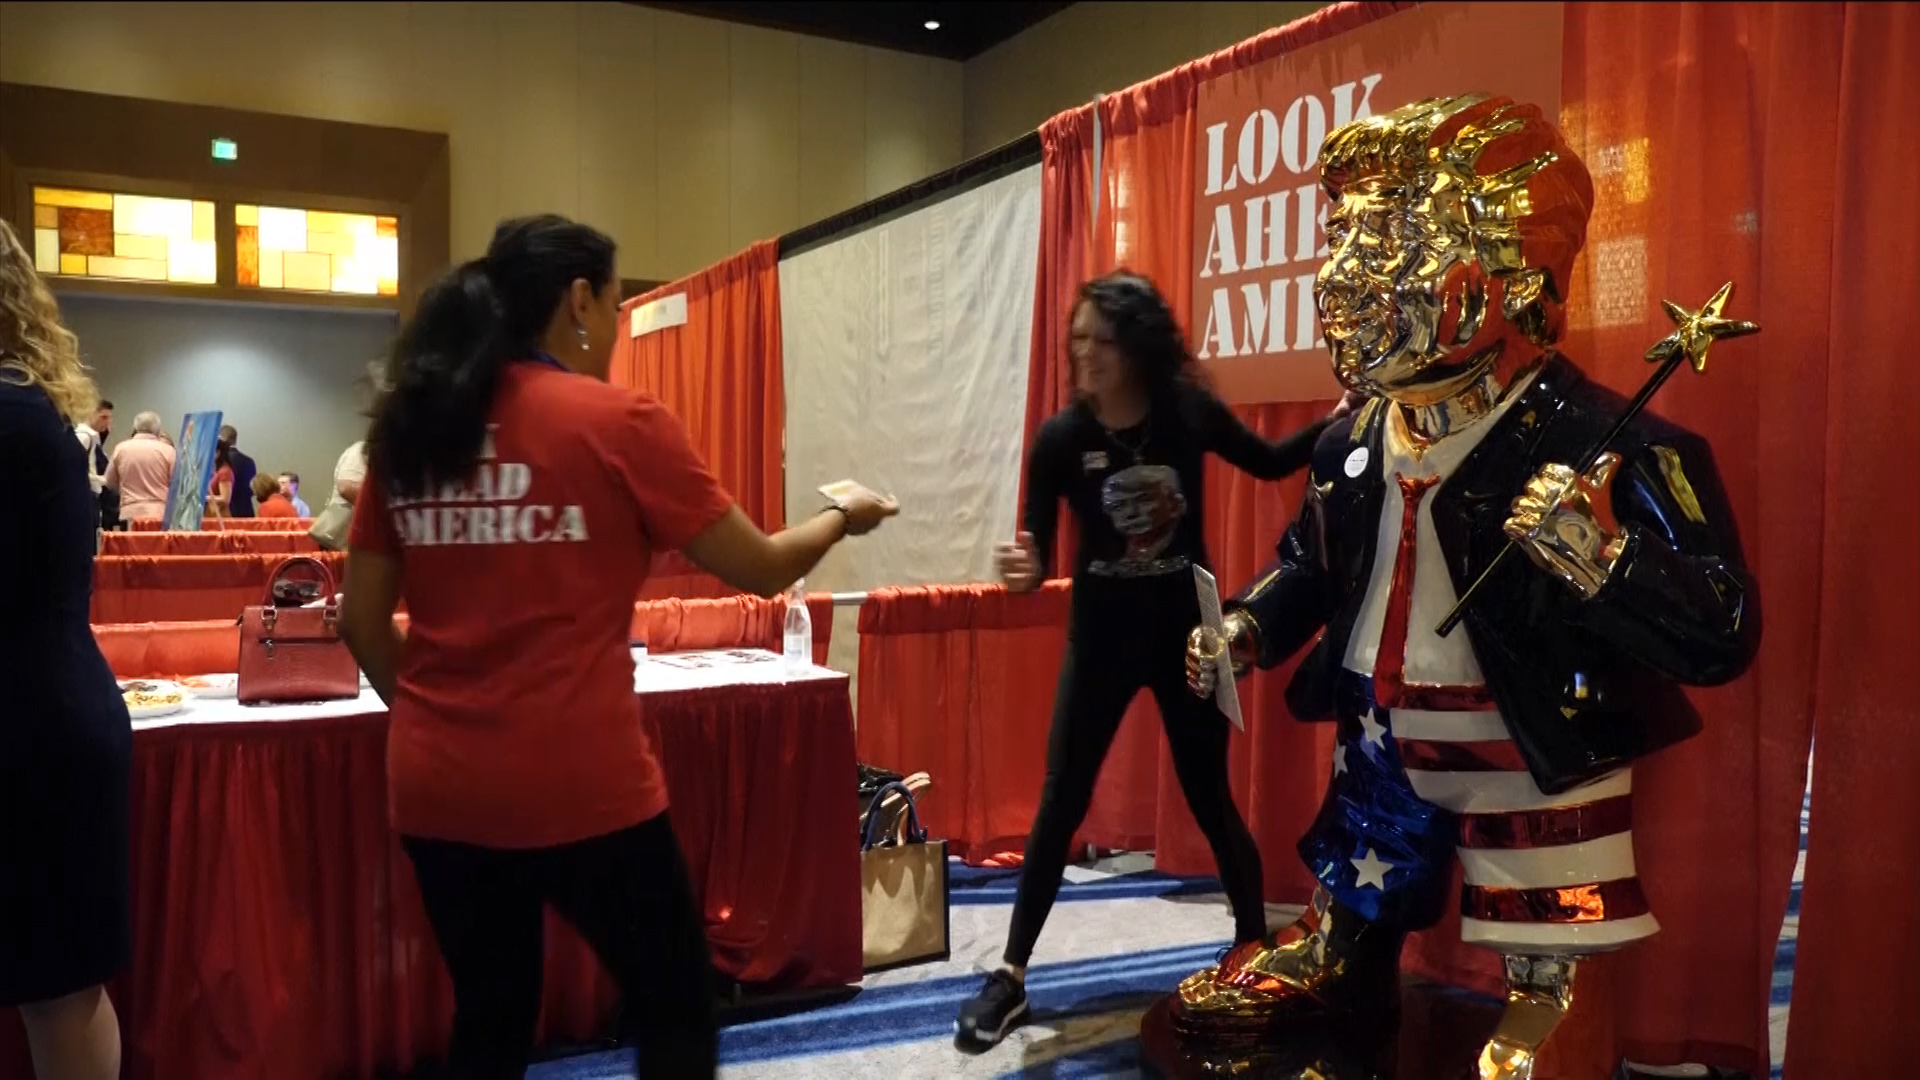 Republicans still loyal to Trump, unveil his gold statue at CPAC